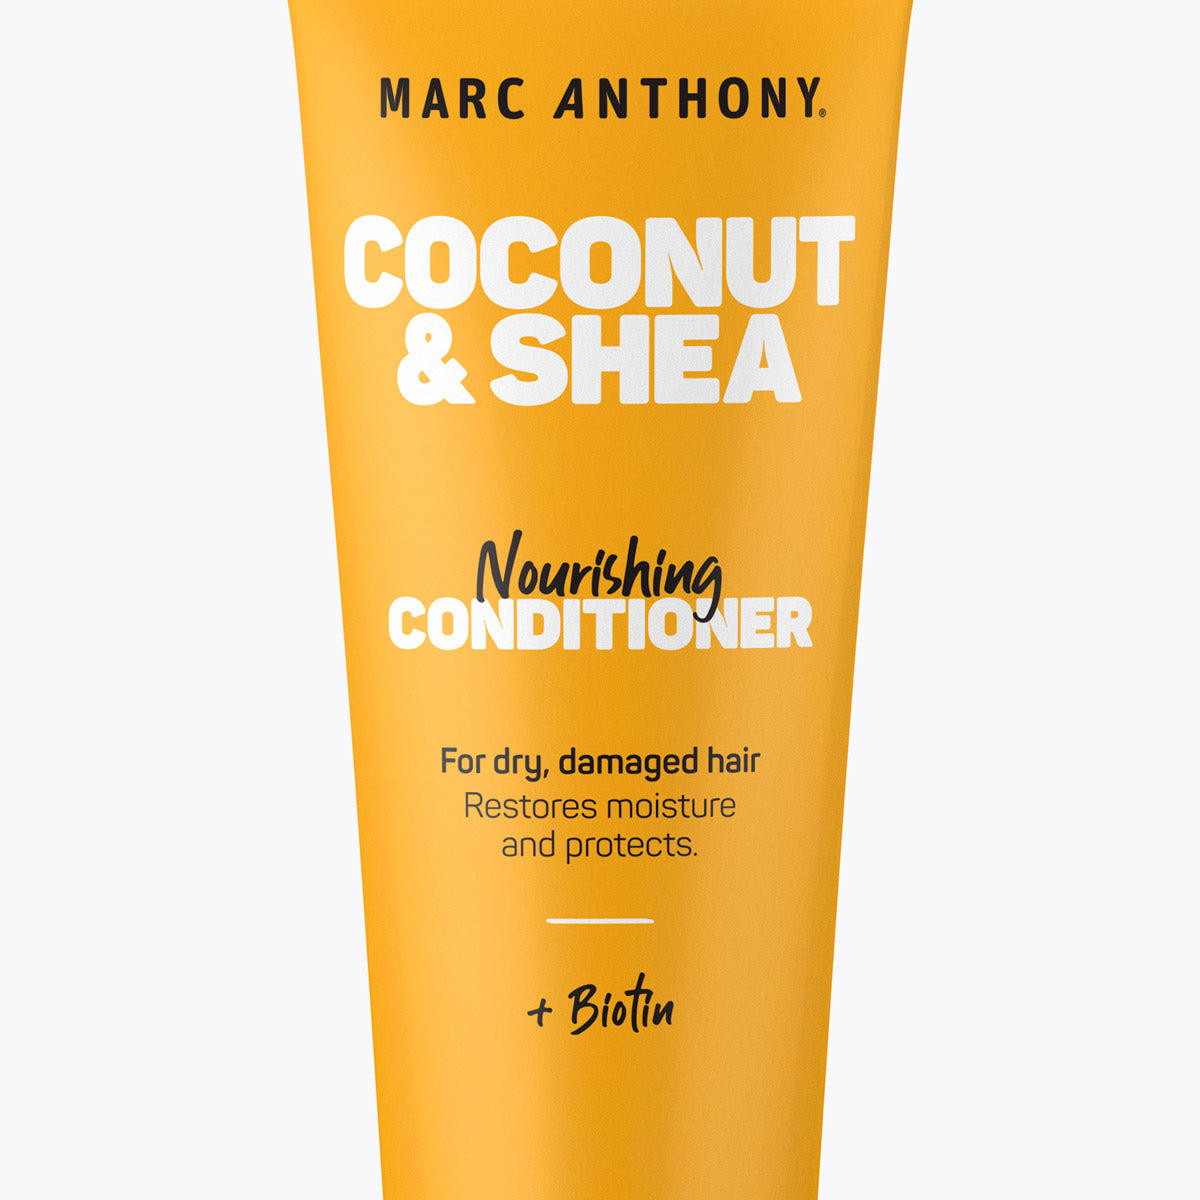 Coconut & Shea <br> Nourishing Conditioner